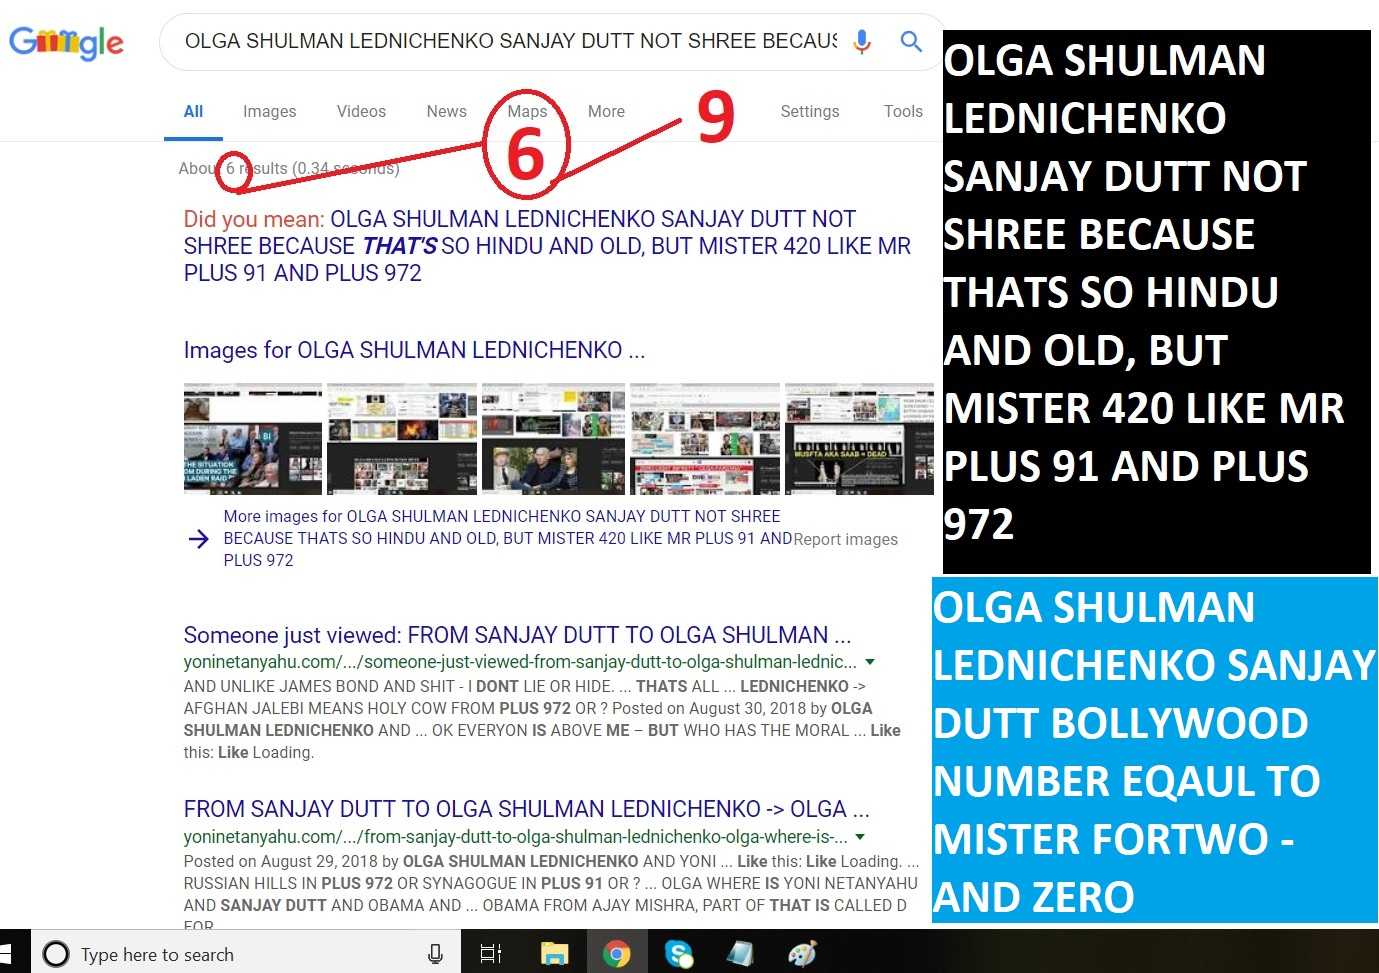 OLGA SHULMAN LEDNICHENKO SANJAY DUTT BOLLYWOOD NUMBER EQAUL TO MISTER FORTWO - AND ZERO